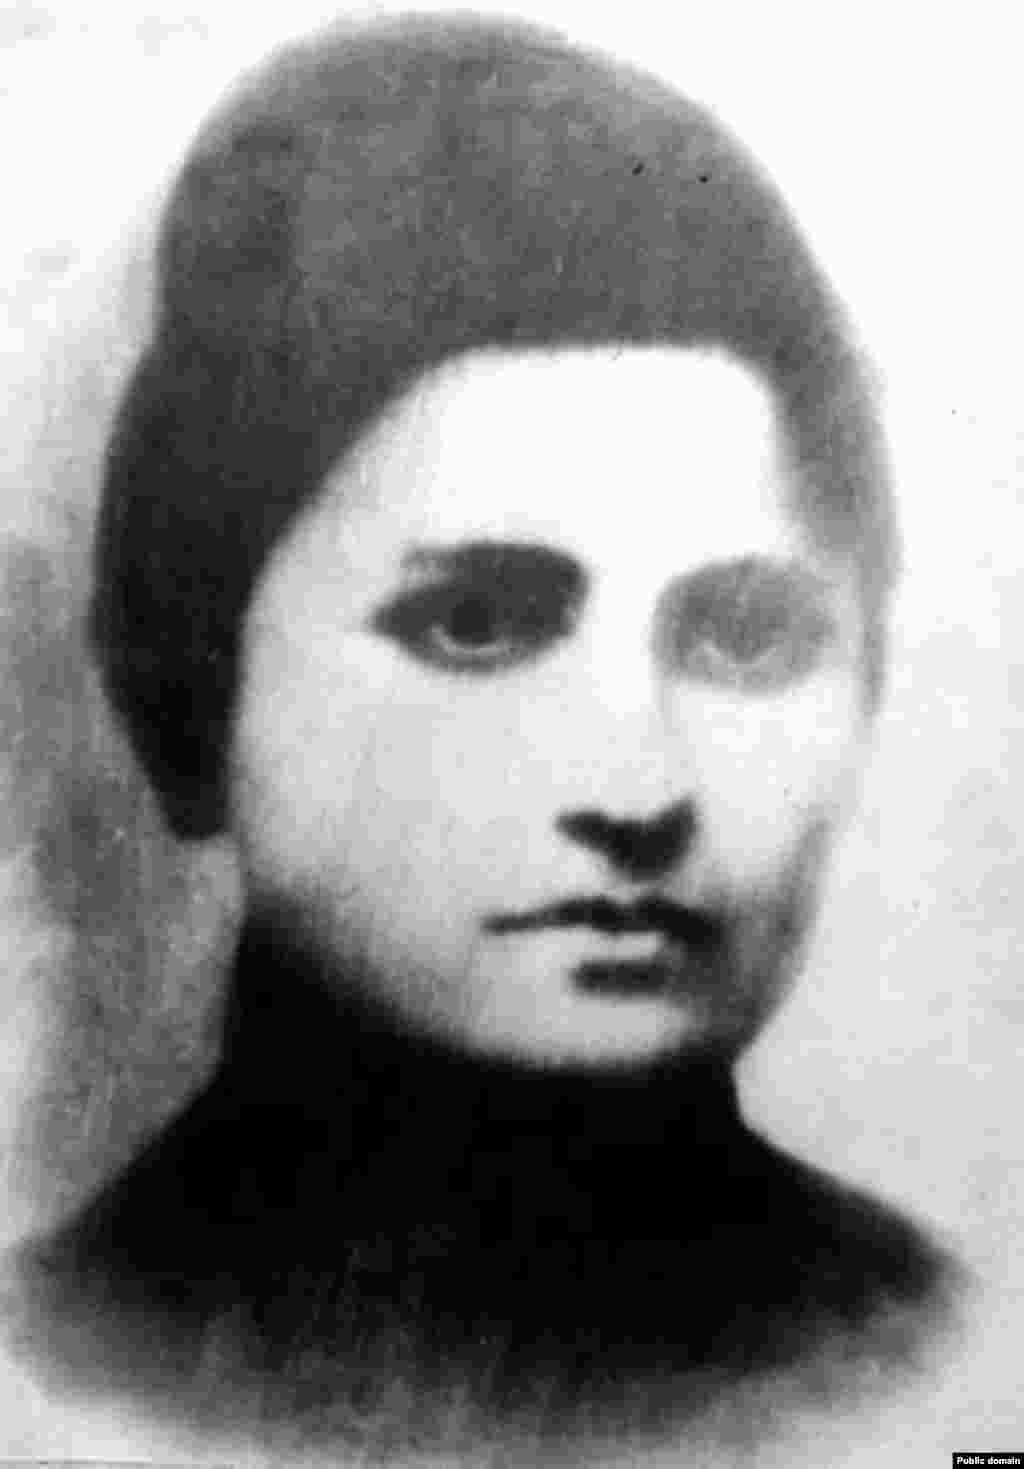 "Stalin's first wife, Yekaterina ""Kato"" Svanidze (1885-1907), shown in a 1904 portrait. They were married in Tbilisi in 1906. She and Stalin had one son, Yakov Dzhugashvili, who was born in 1907. Yekaterina died of tuberculosis in 1907. Much of her family, including a sister and brother, were executed during the Great Terror. Yakov Dzhugashvili was a Soviet artillery officer during World War II. He was captured by the Germans in 1941. After Stalin refused a prisoner exchange for him, Yakov died in captivity under unknown circumstances in April 1943."